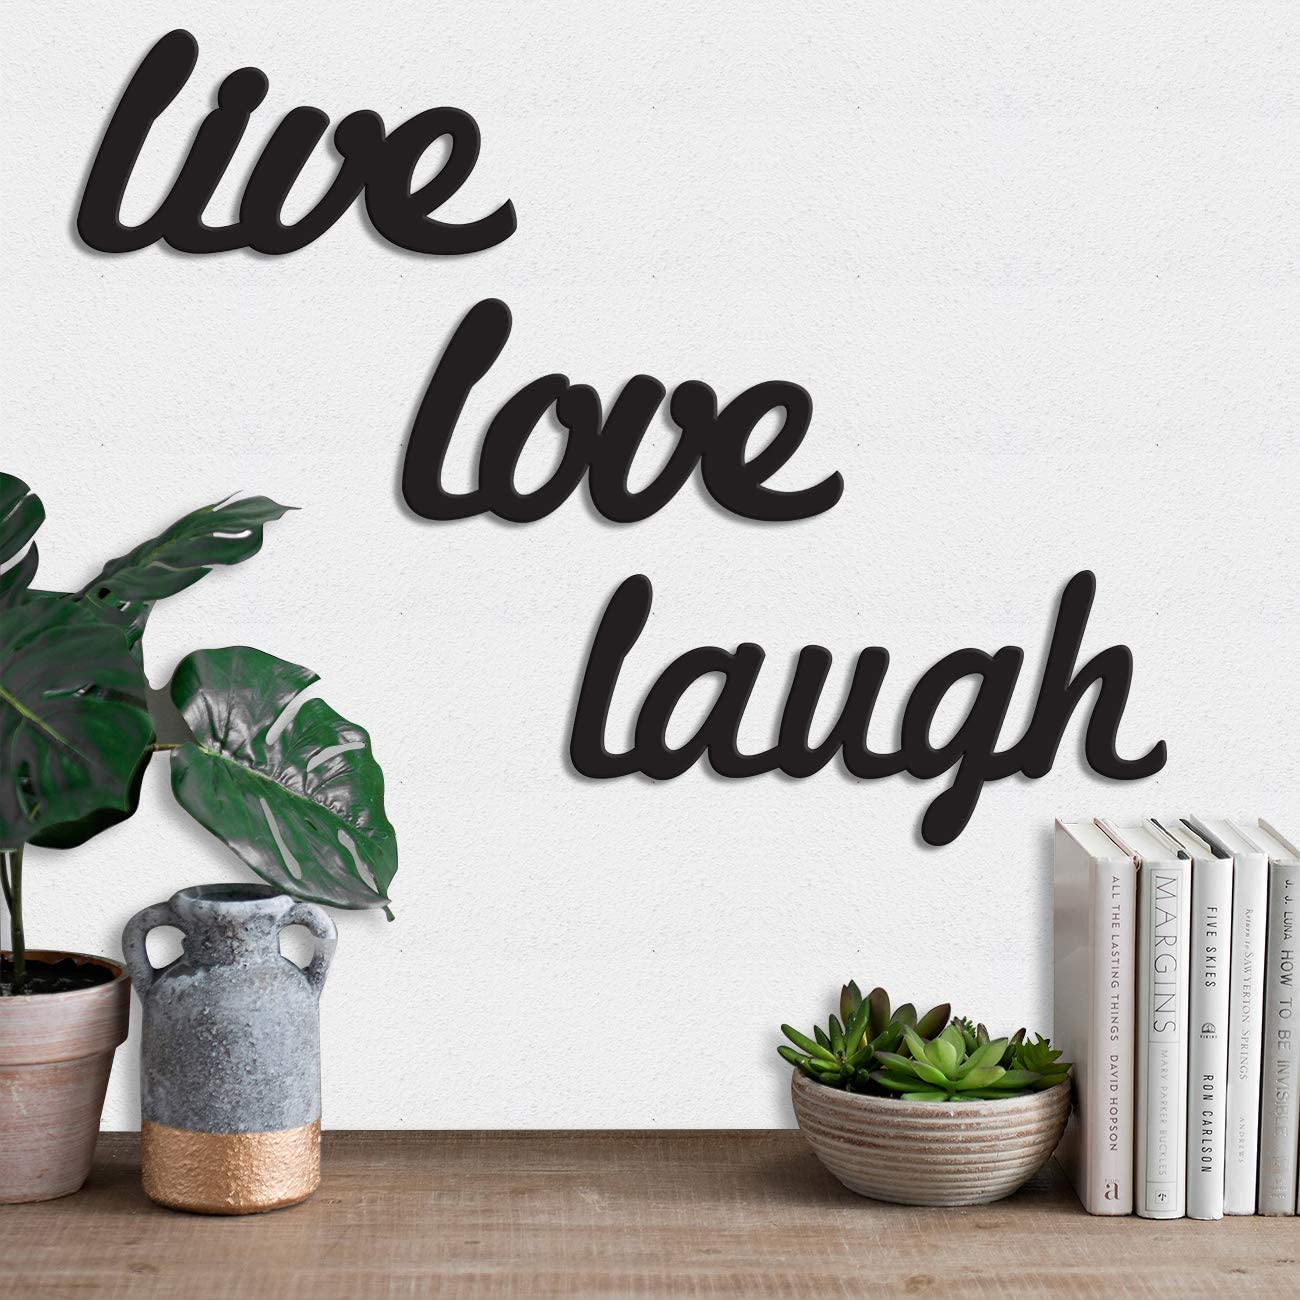 Art Street MDF Wood Sign Live Love Laugh Wall Plaque, Wood Sign Wall Decoratives